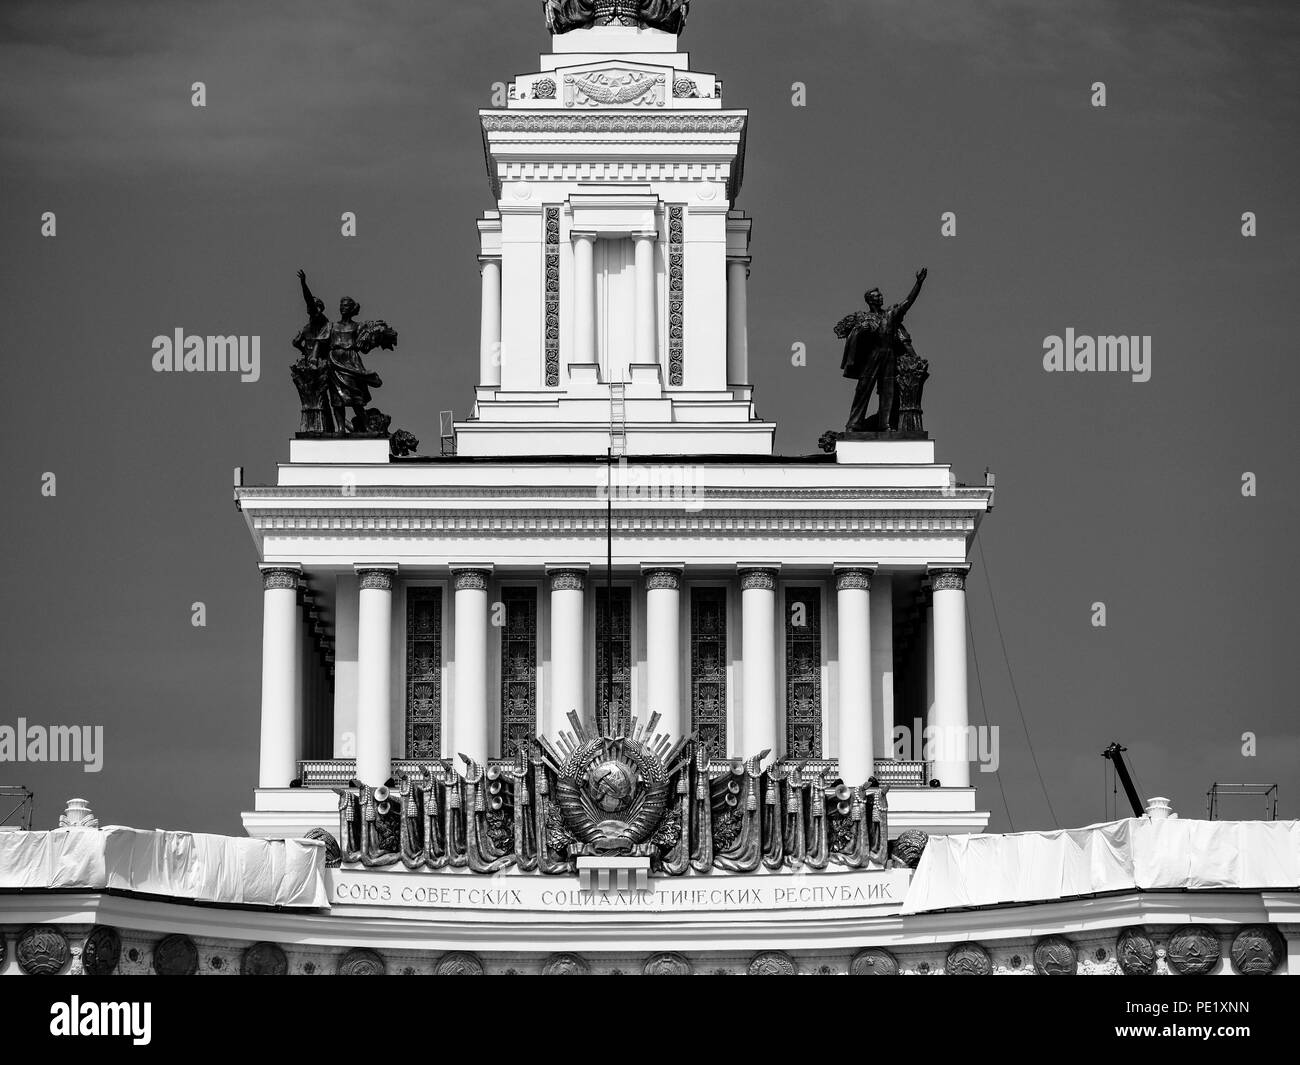 VDNKH Moscow Stock Photo